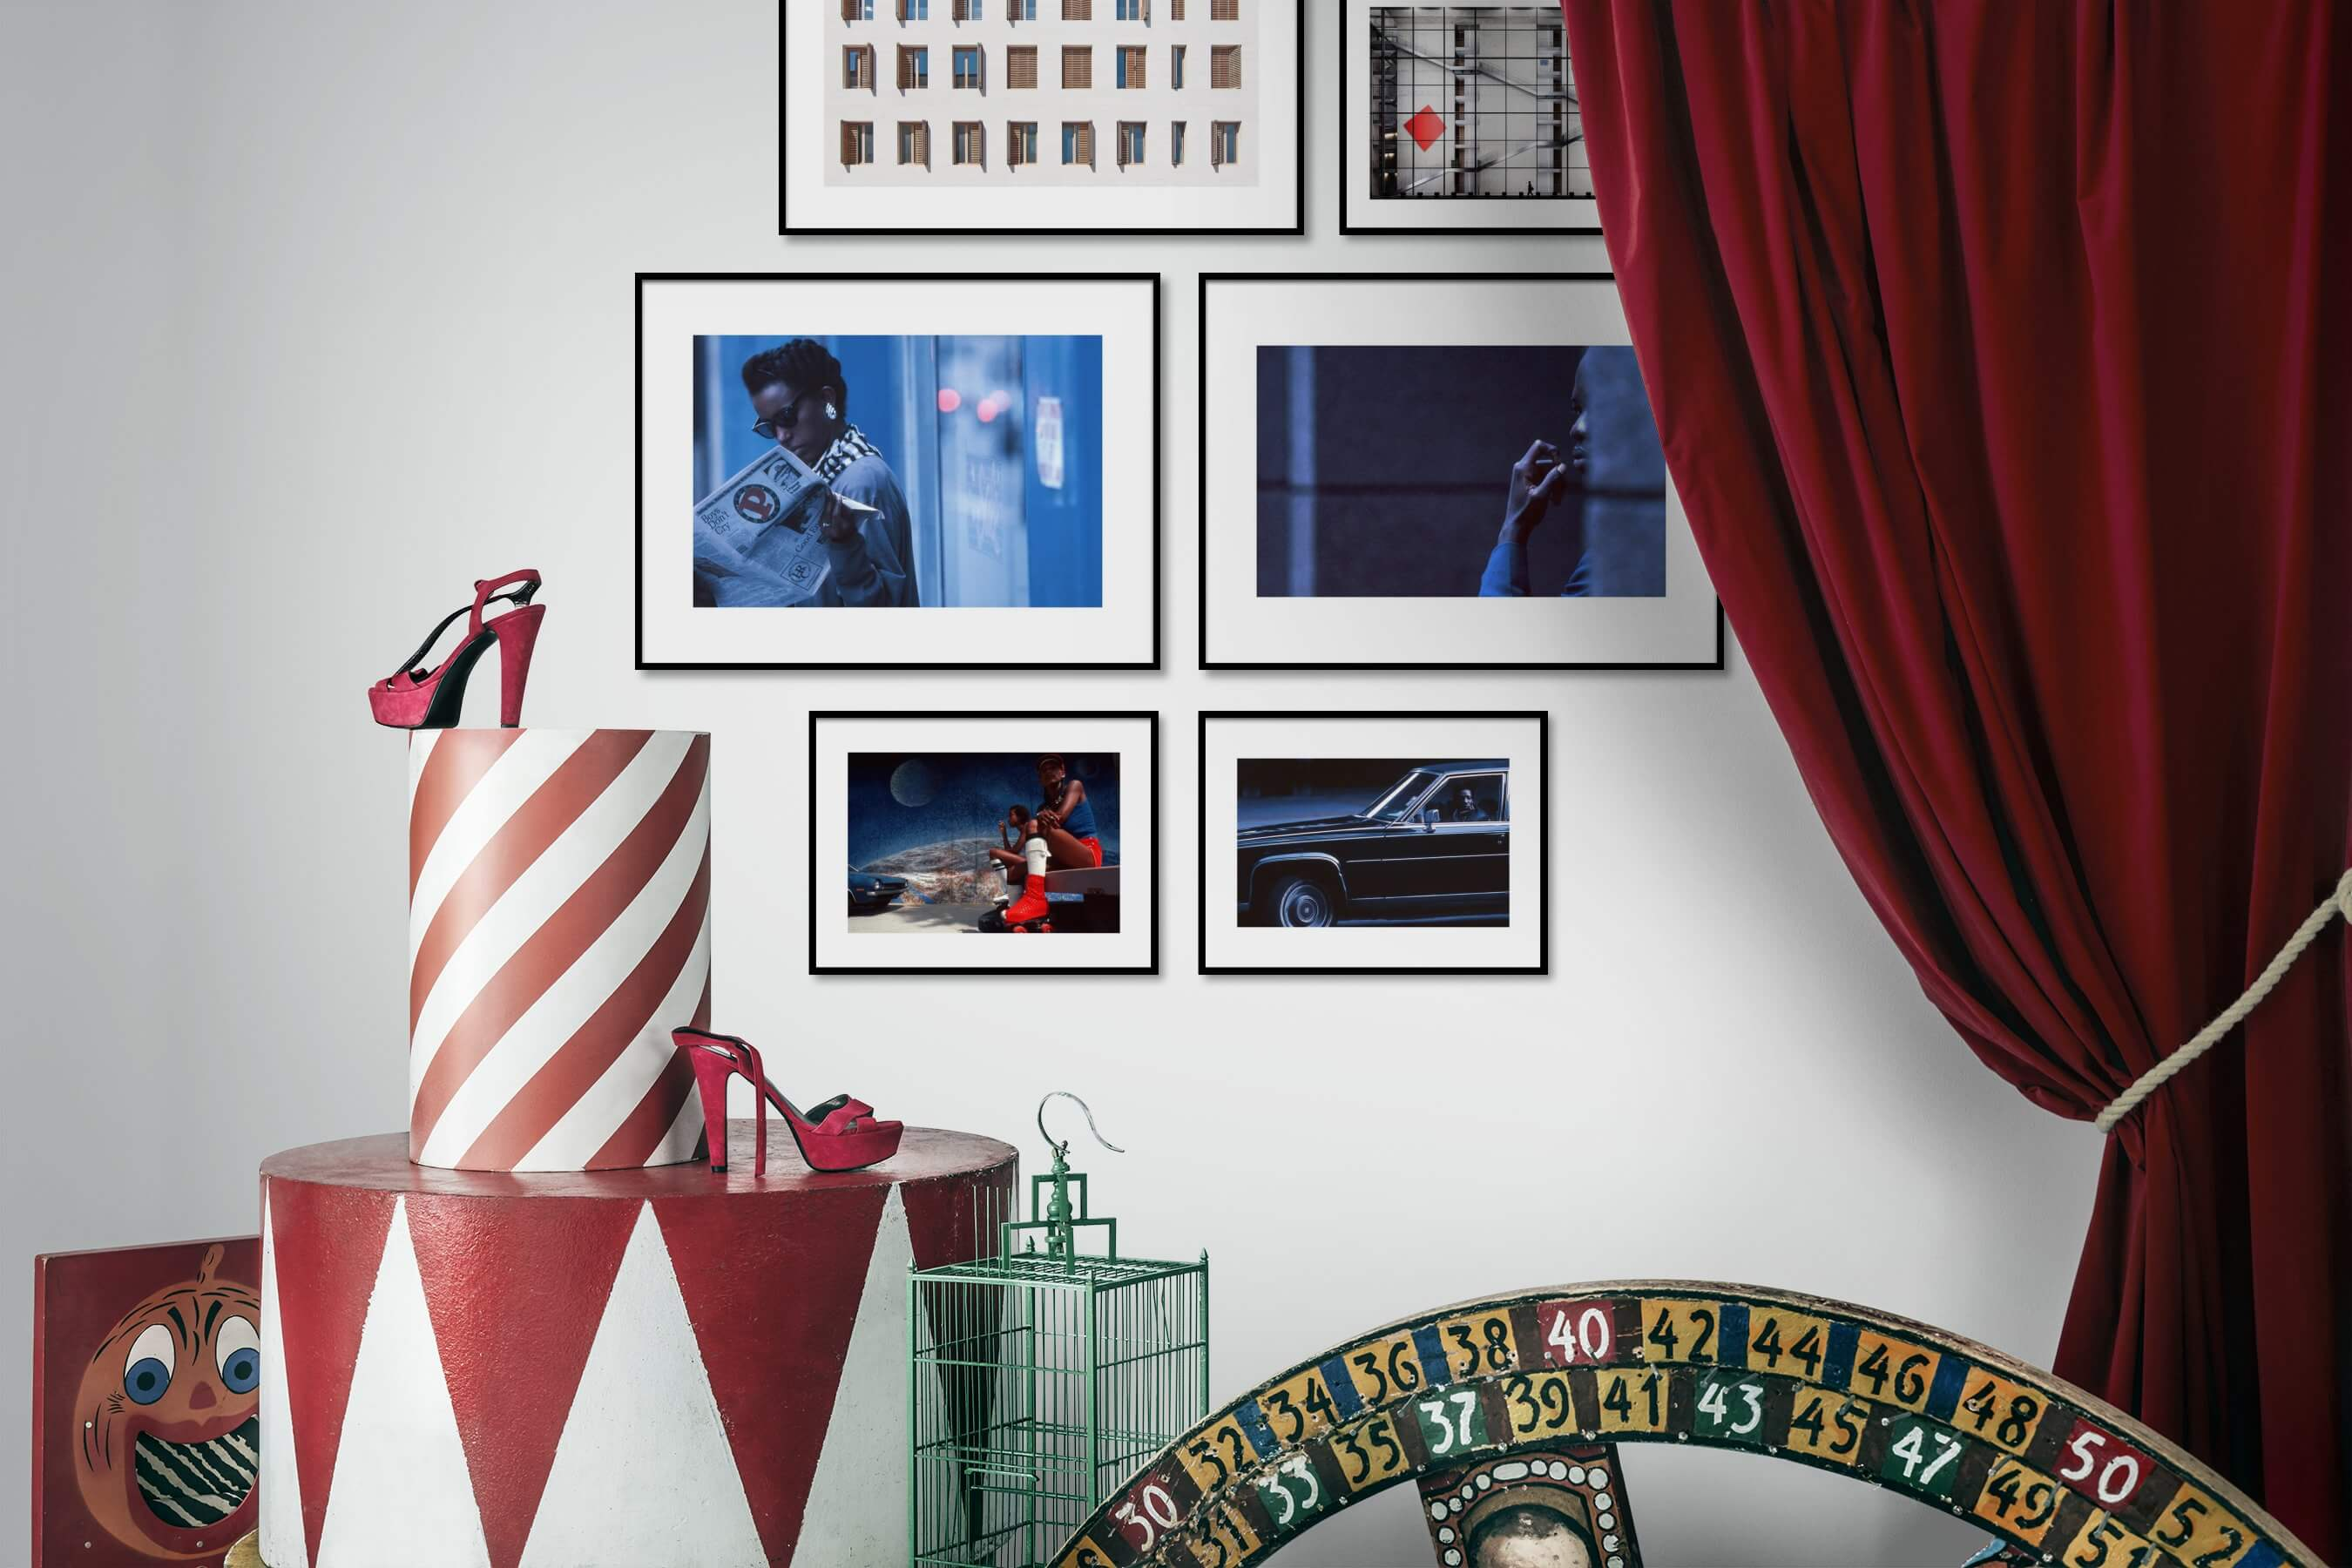 Gallery wall idea with six framed pictures arranged on a wall depicting For the Moderate, City Life, Americana, Vintage, and Fashion & Beauty